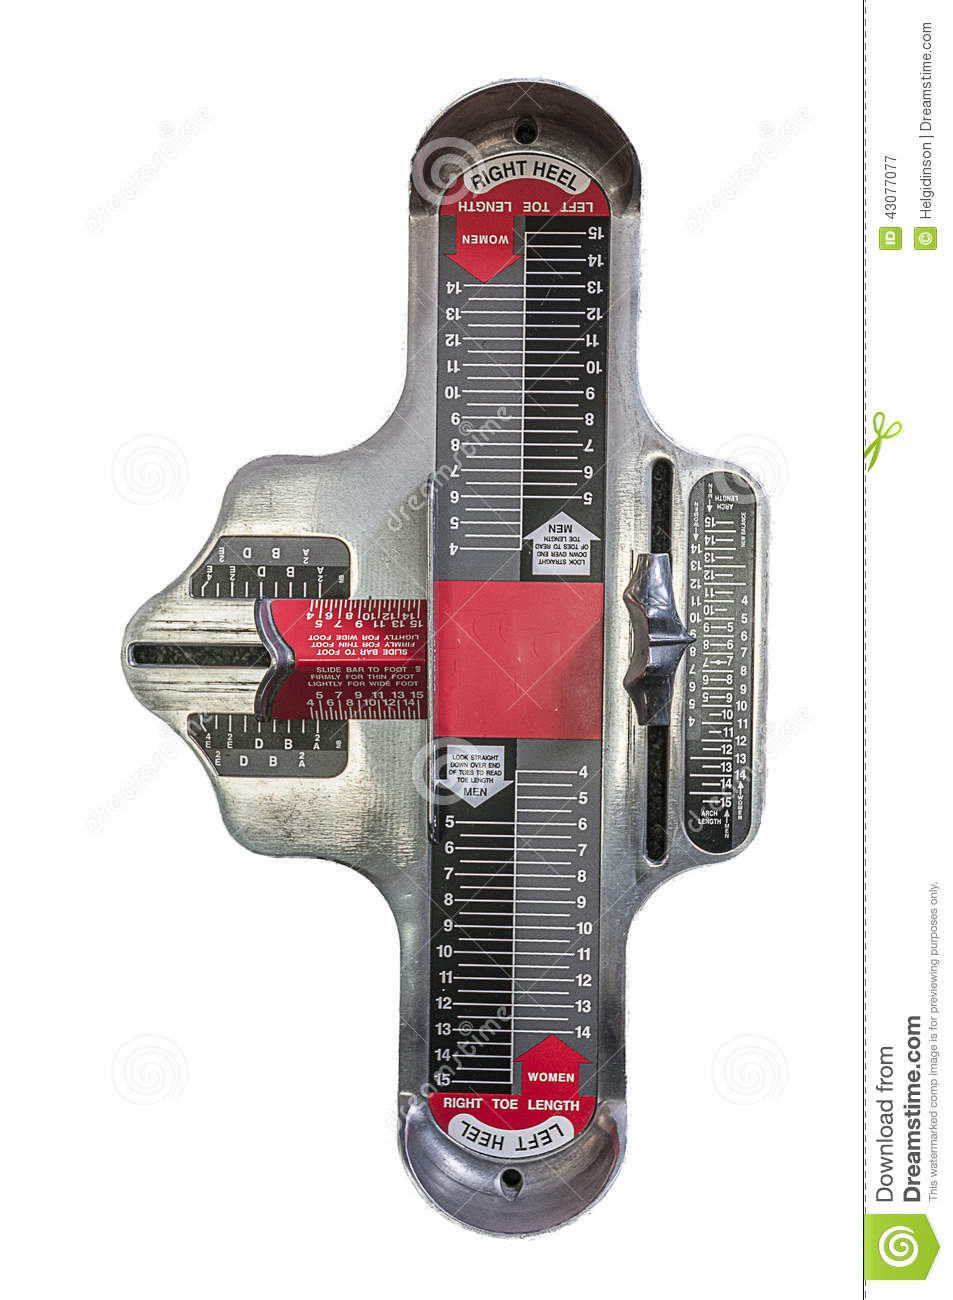 Name Of The Foot Measuring Device : Brannock device stock image of contractor length